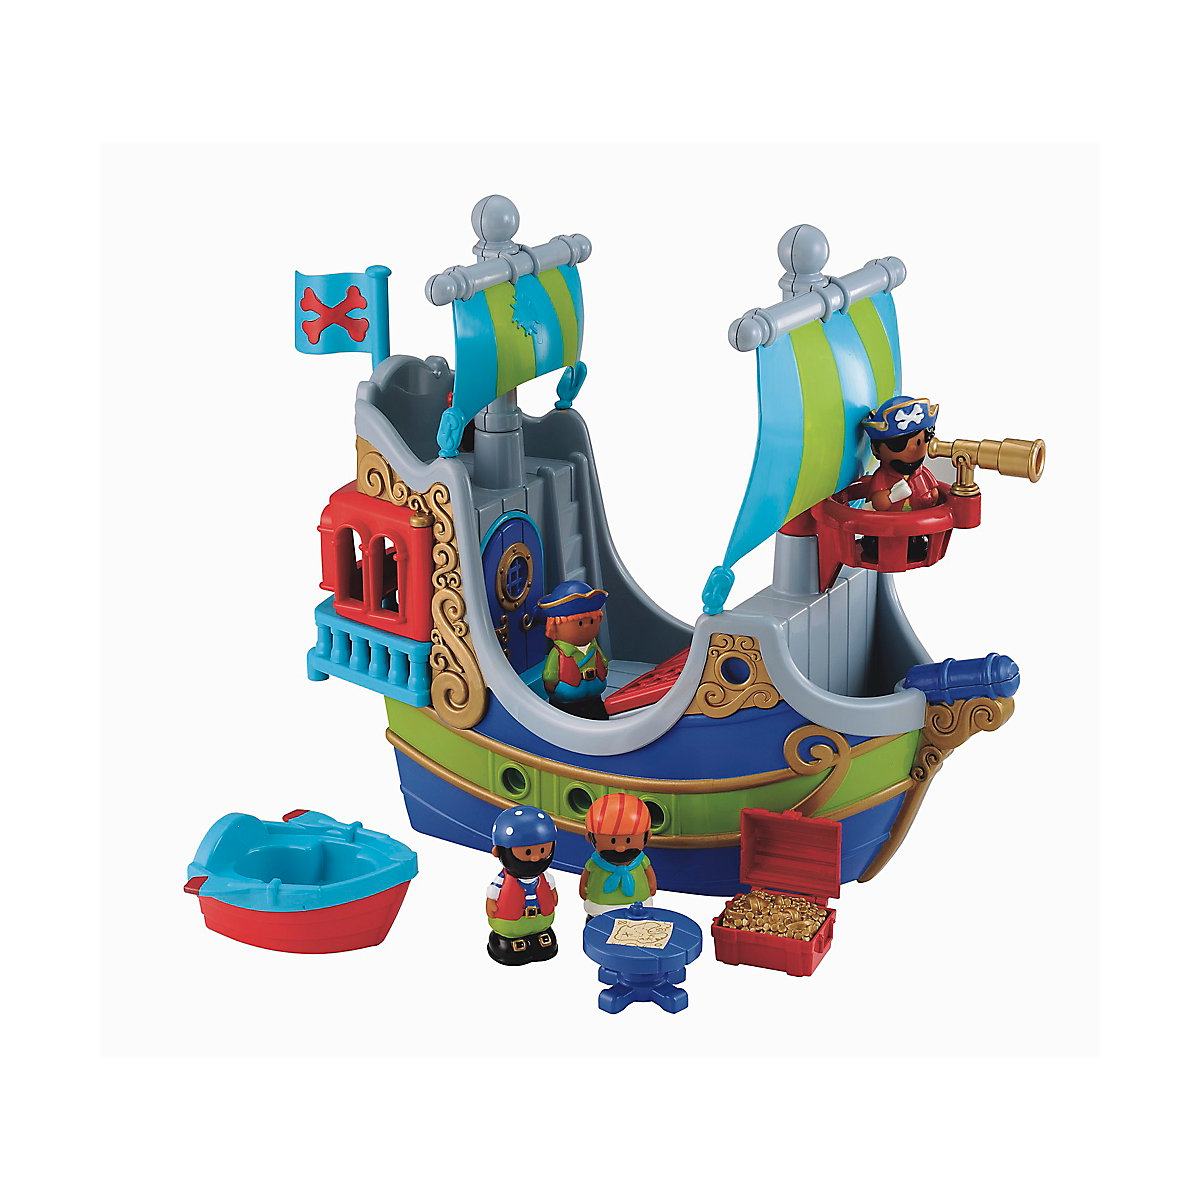 New HappyLand Boys and Girls Pirate Ship Playset Toy From 18 months